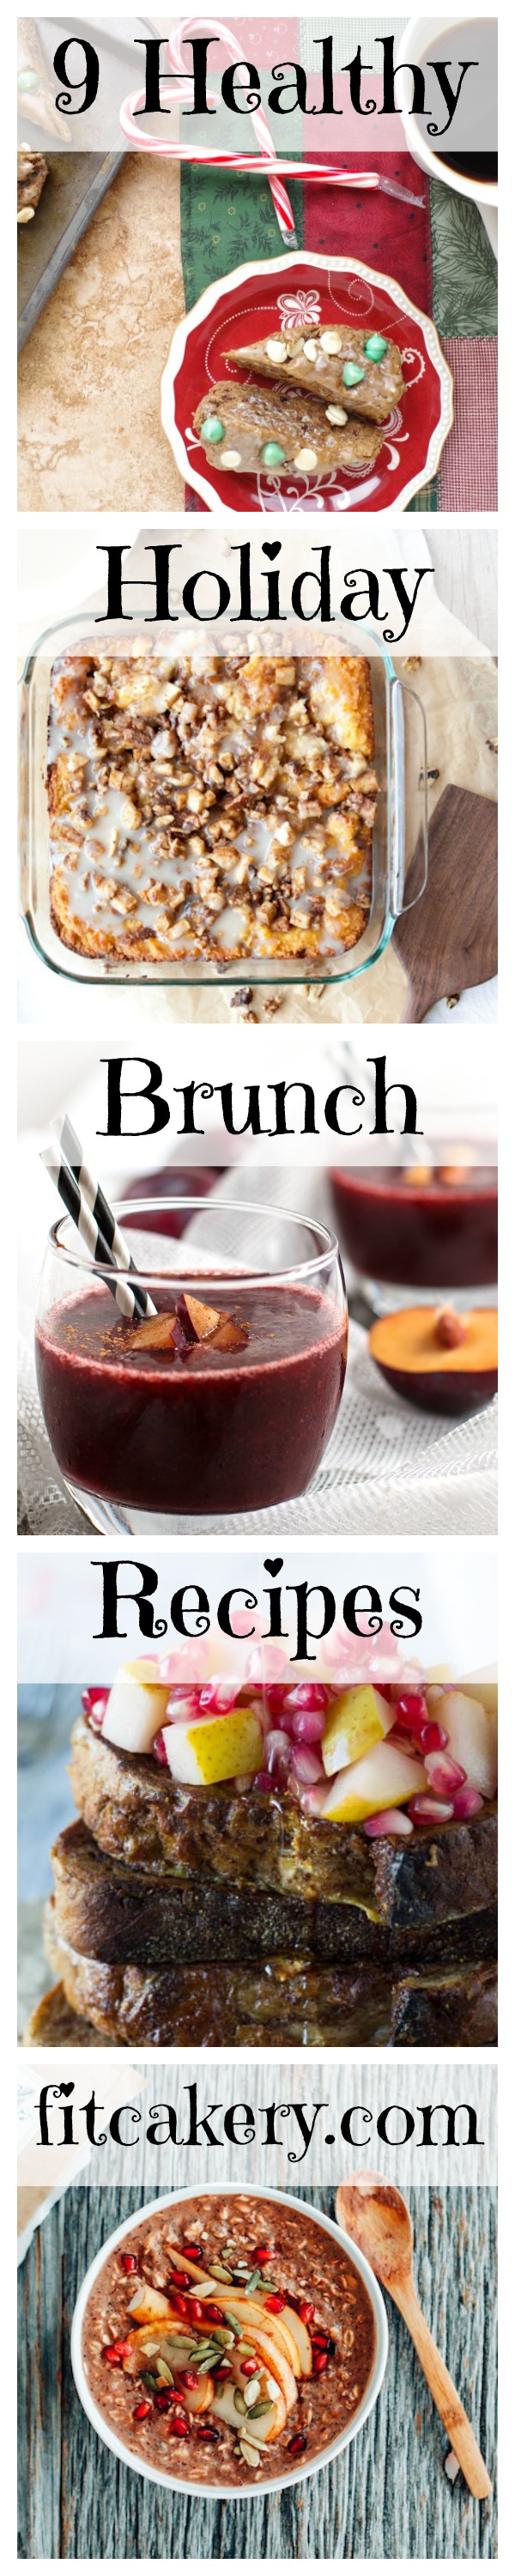 Of course I want to do brunch! These recipes even make it super healthy! #holidayrecipes